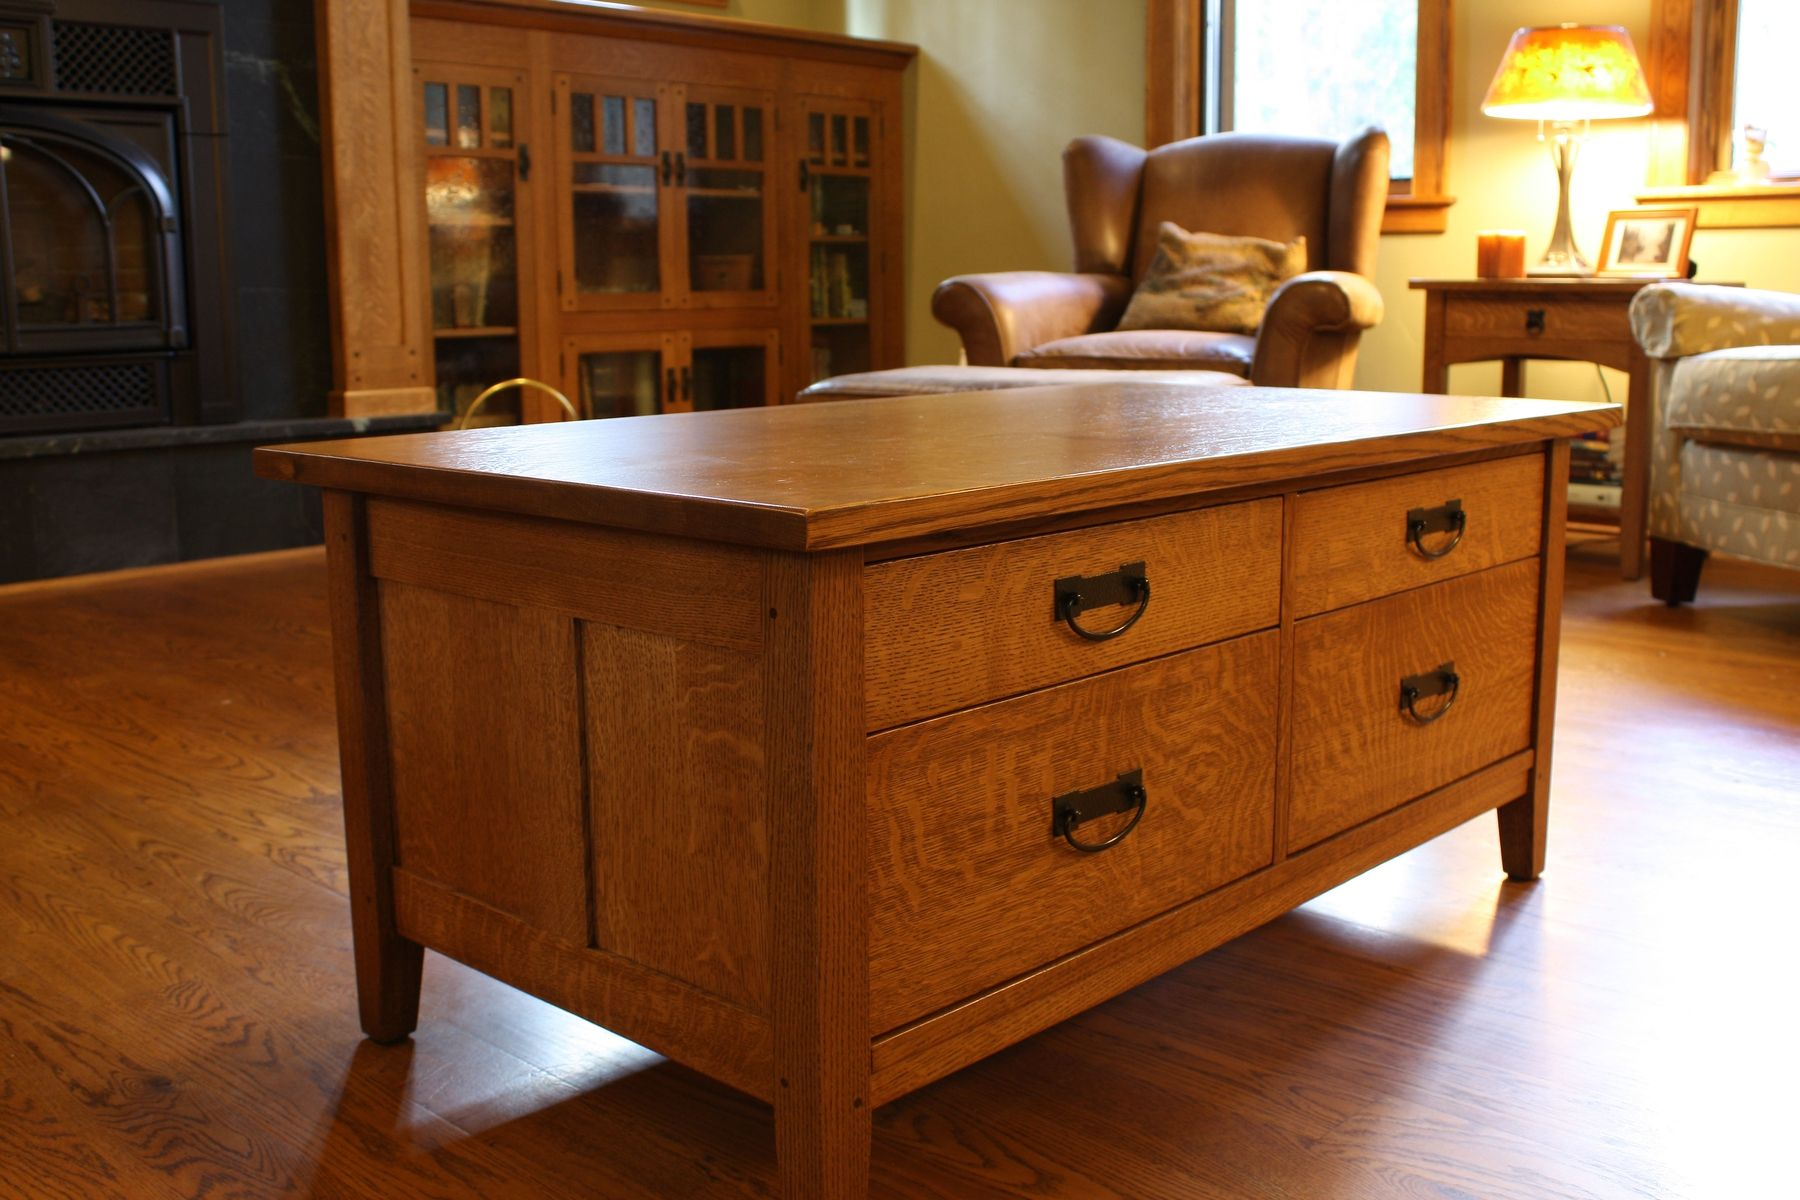 Custom Mission Style Coffee Table By Montana Cabinet amp Canoe CustomMadecom